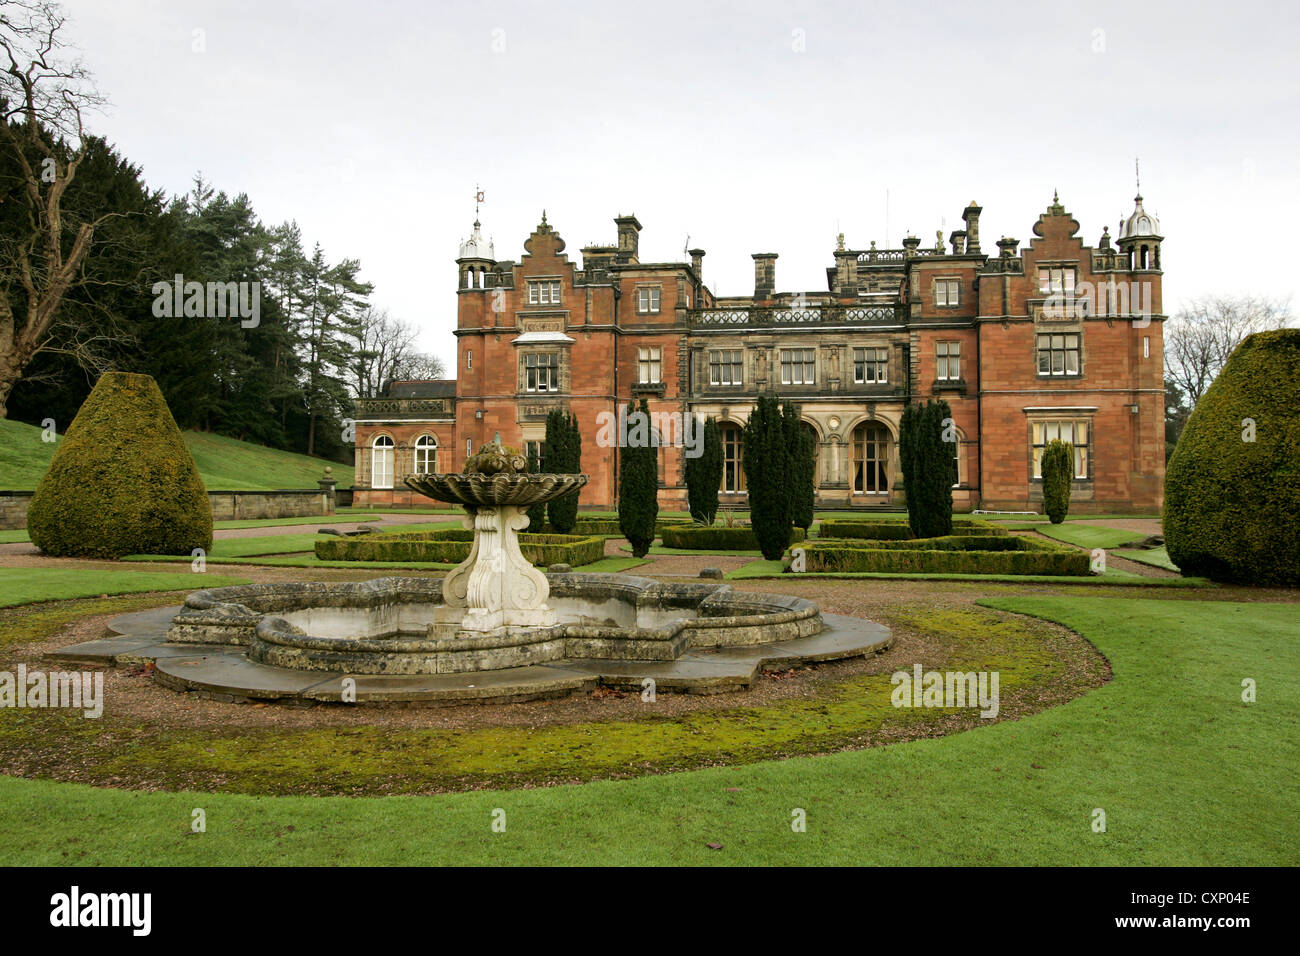 Keele Hall Is A 19th Century Mansion House At Keele Staffordshire England Now Standing On The Campus Of Keele University